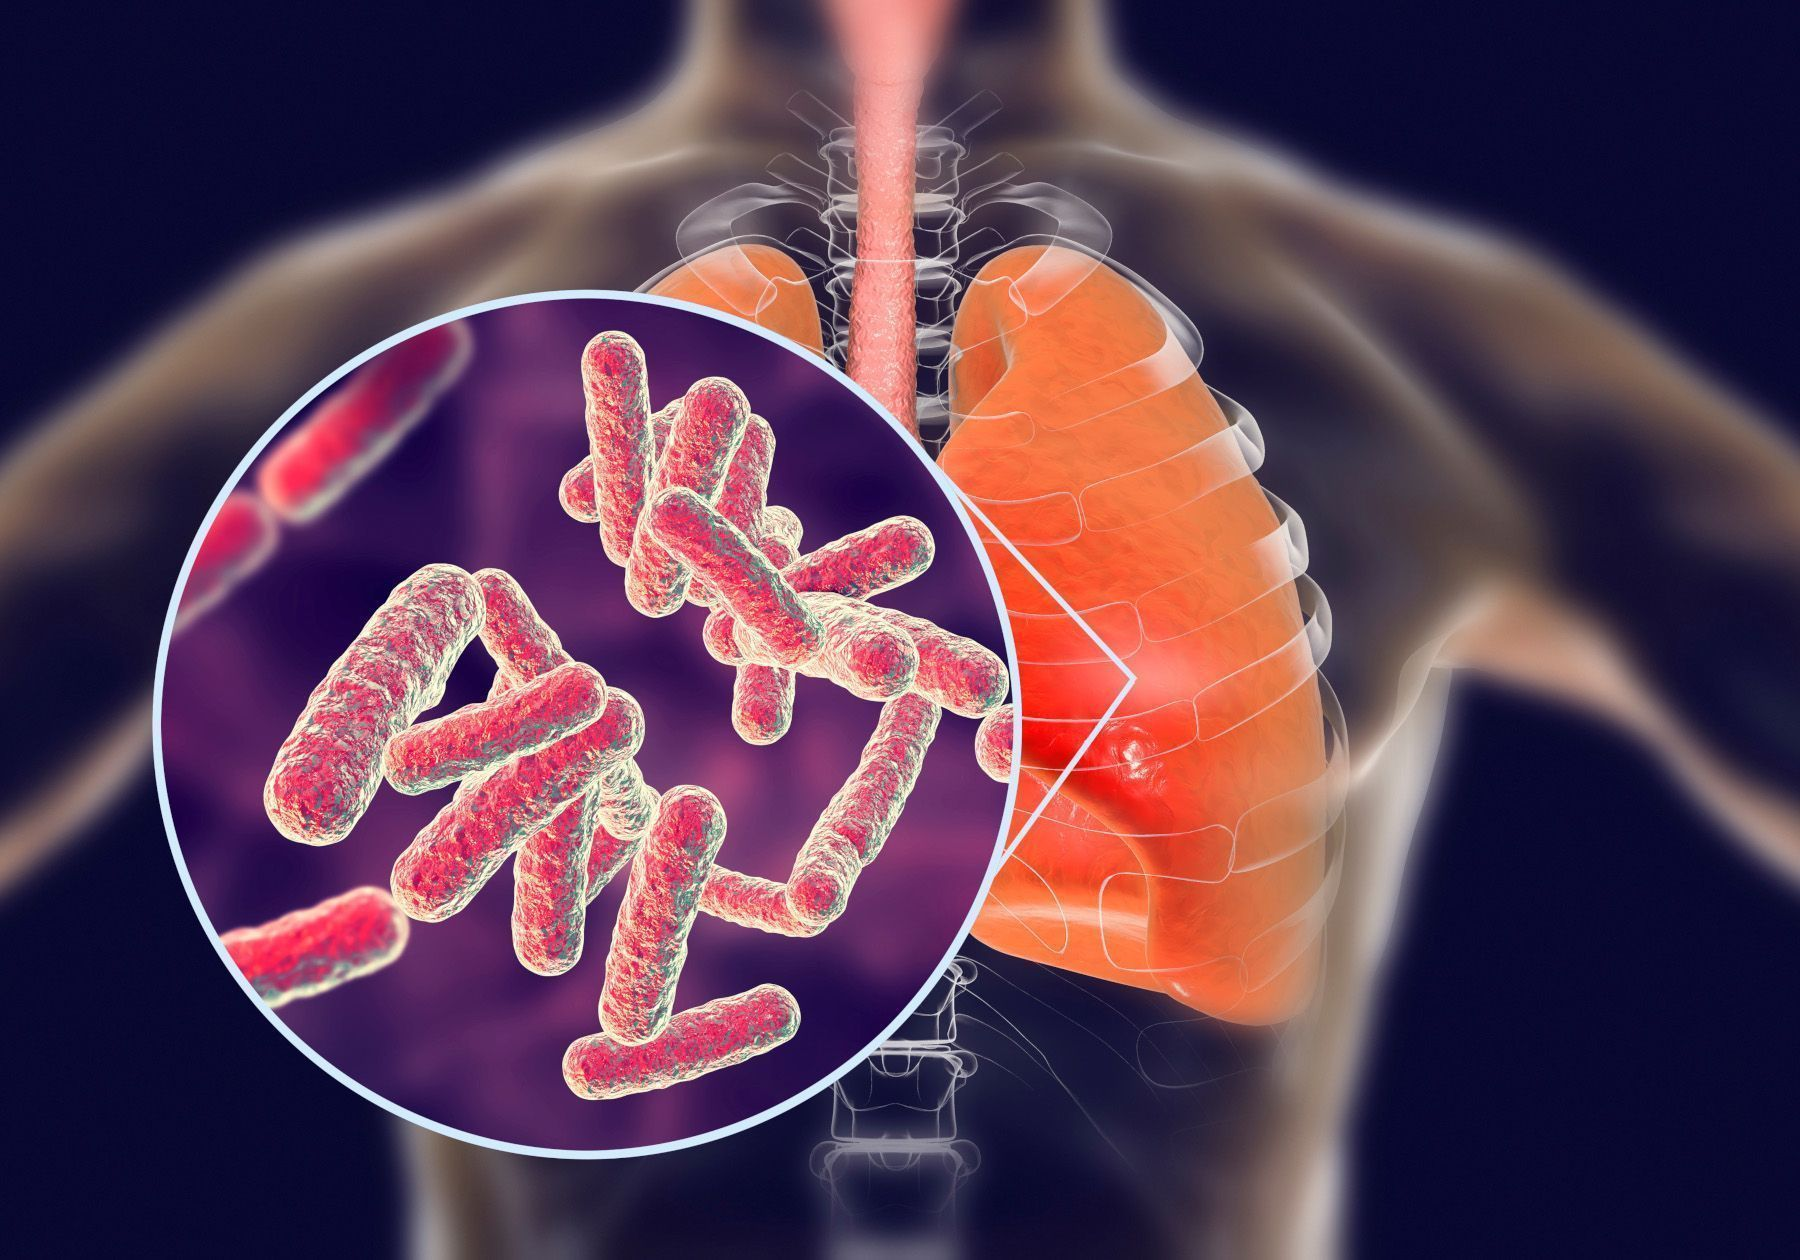 FDA Approves New Drug to Help Fight Treatment-Resistant Tuberculosis